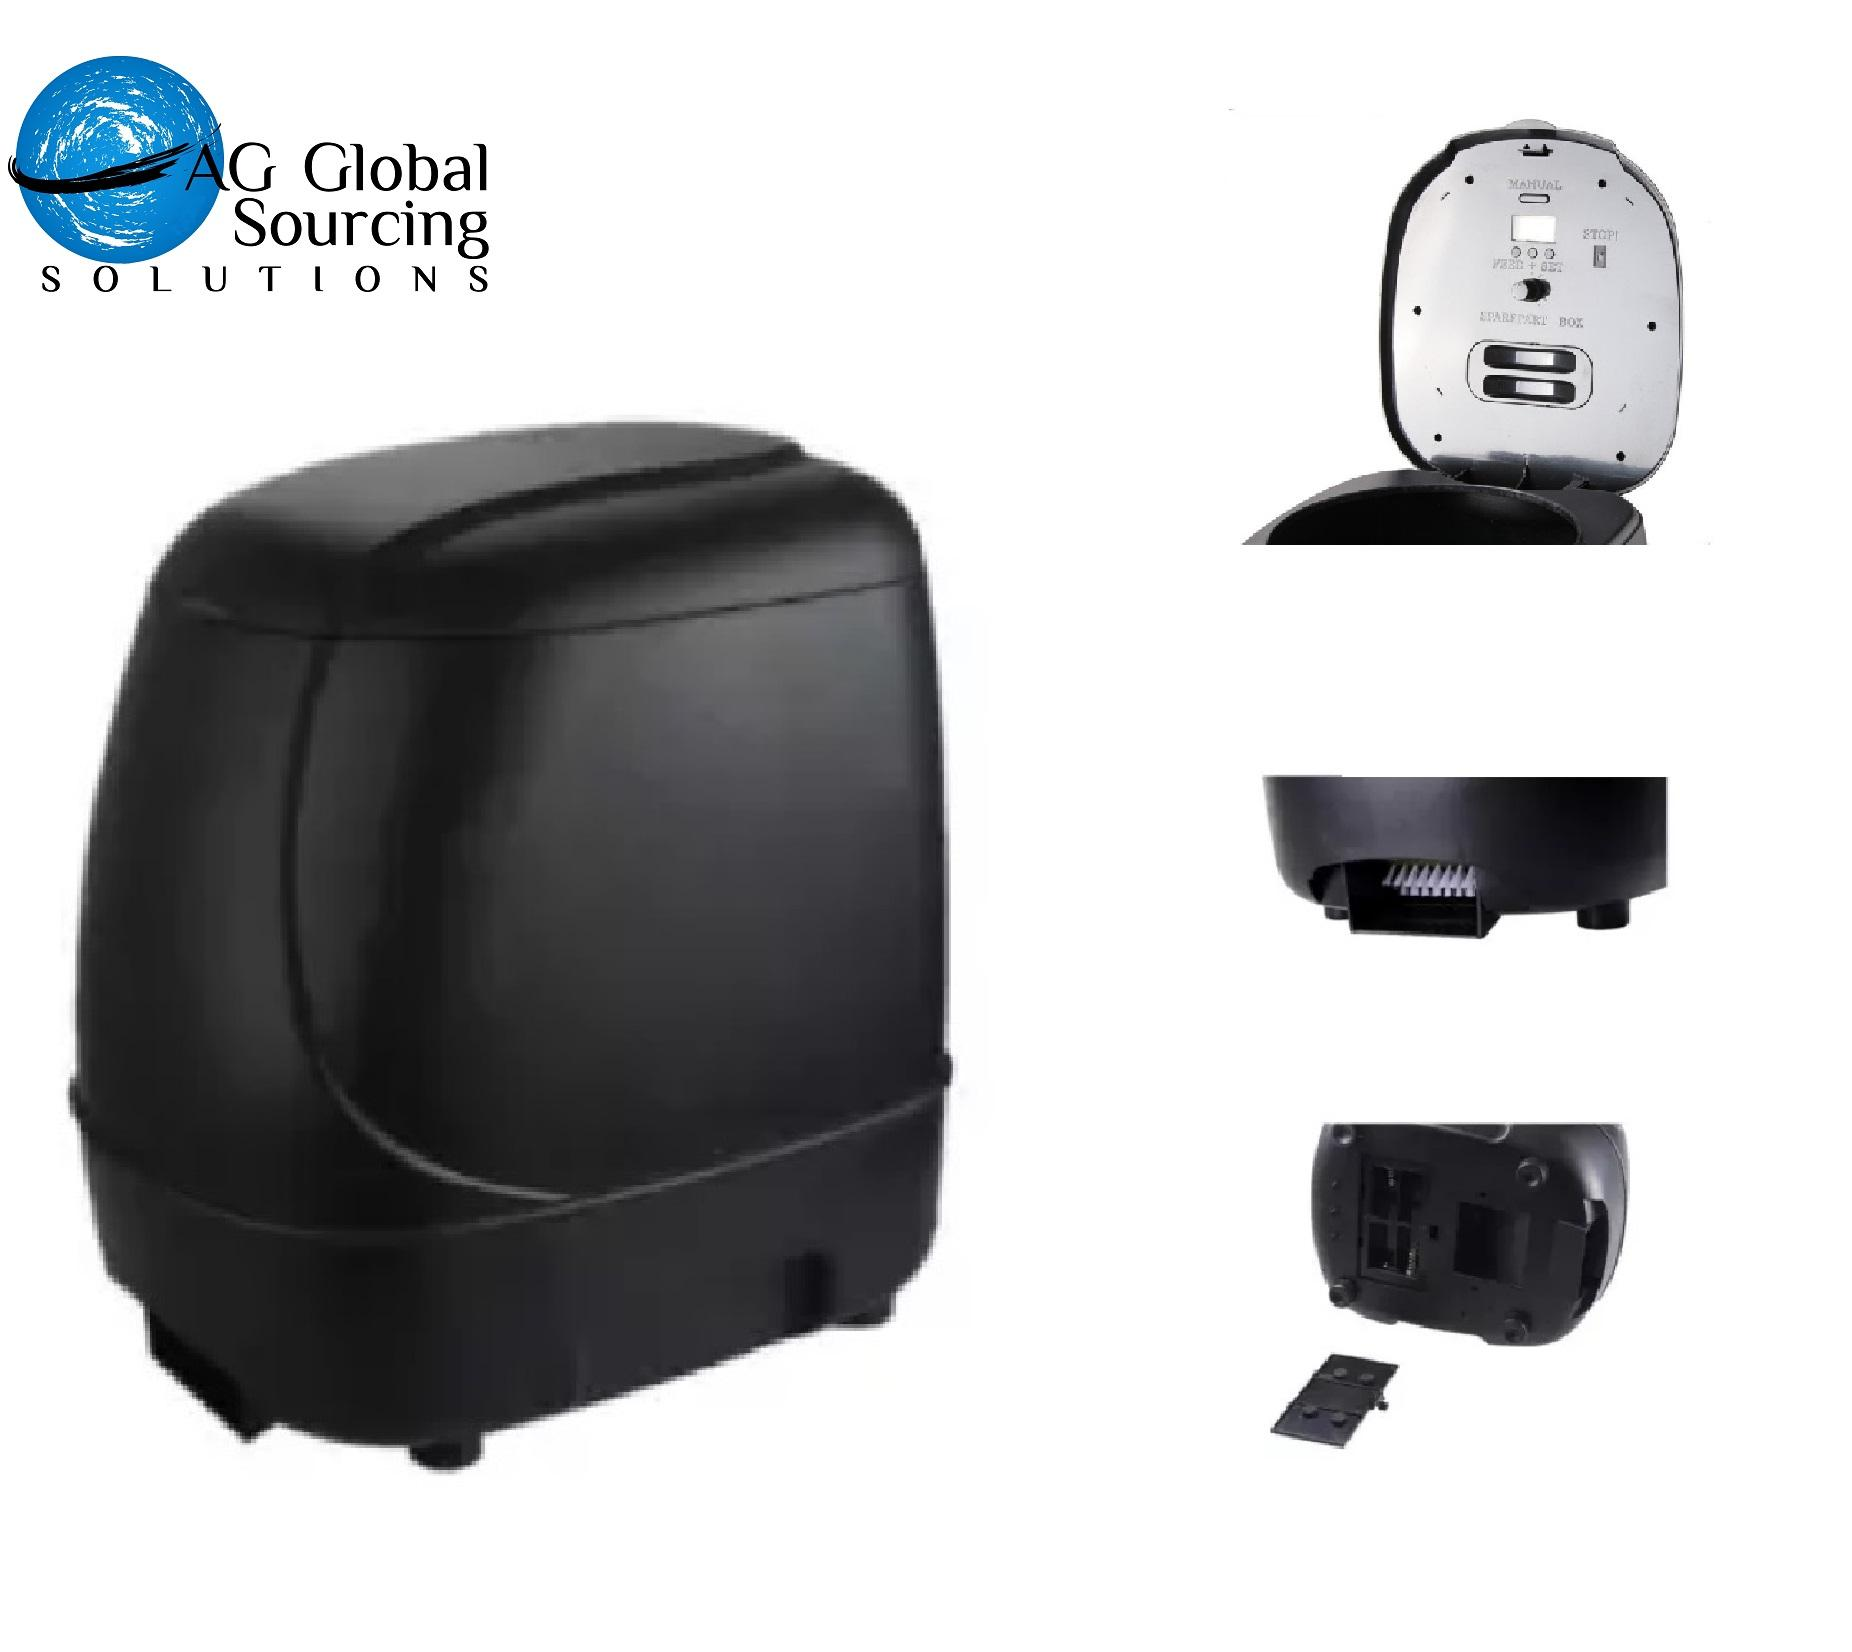 Automatic Pond Feeder By Ag Global Sourcing Solutions.